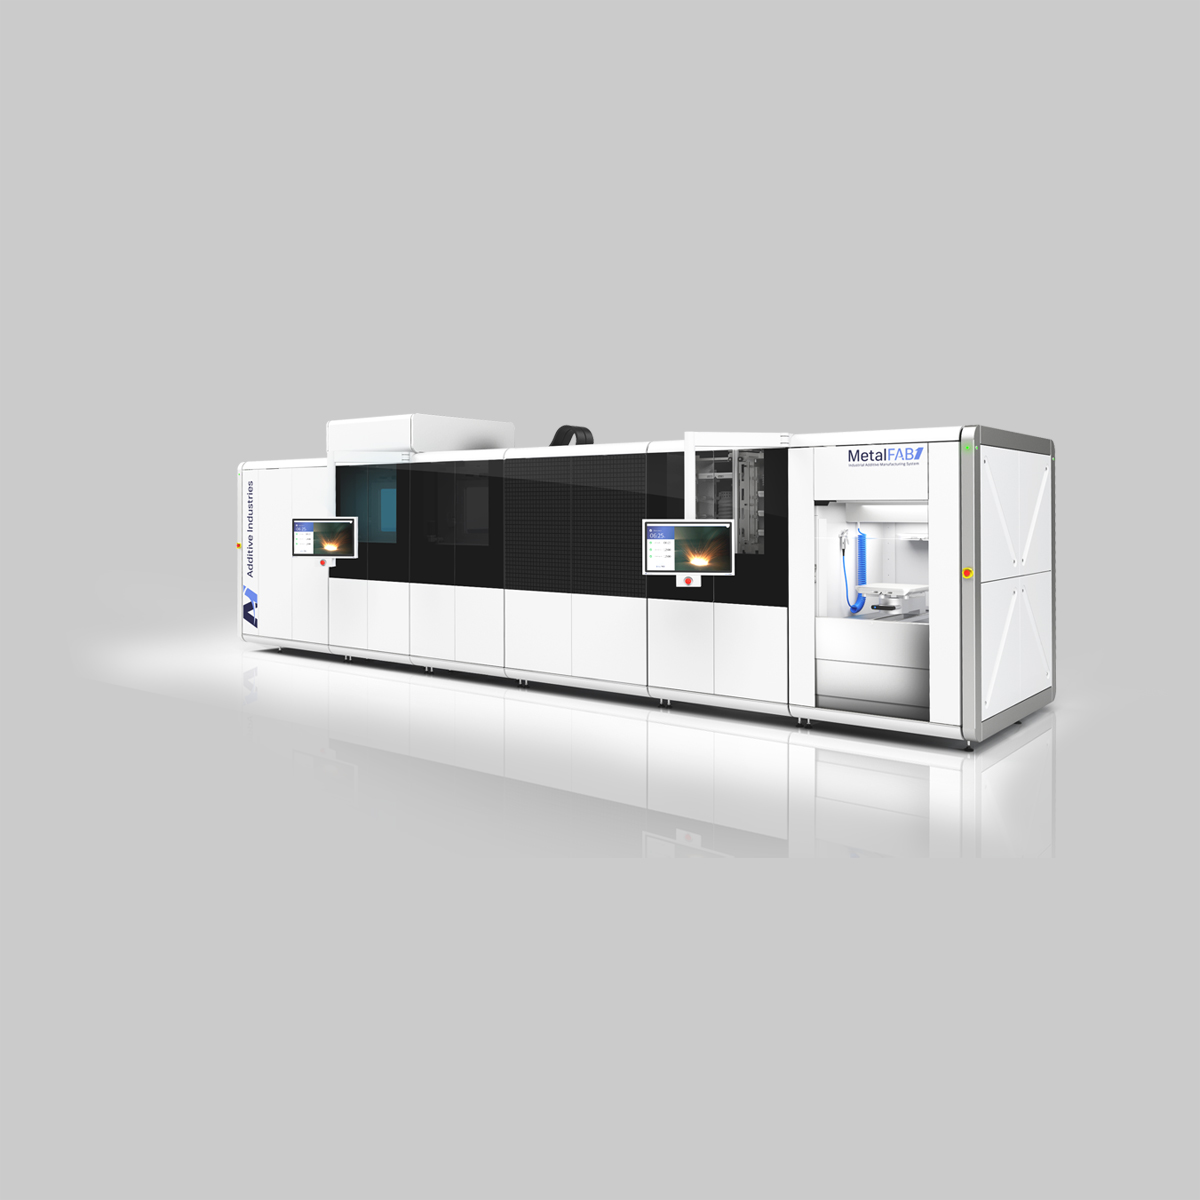 feature metalfab1 metal 3D printer from additive industries